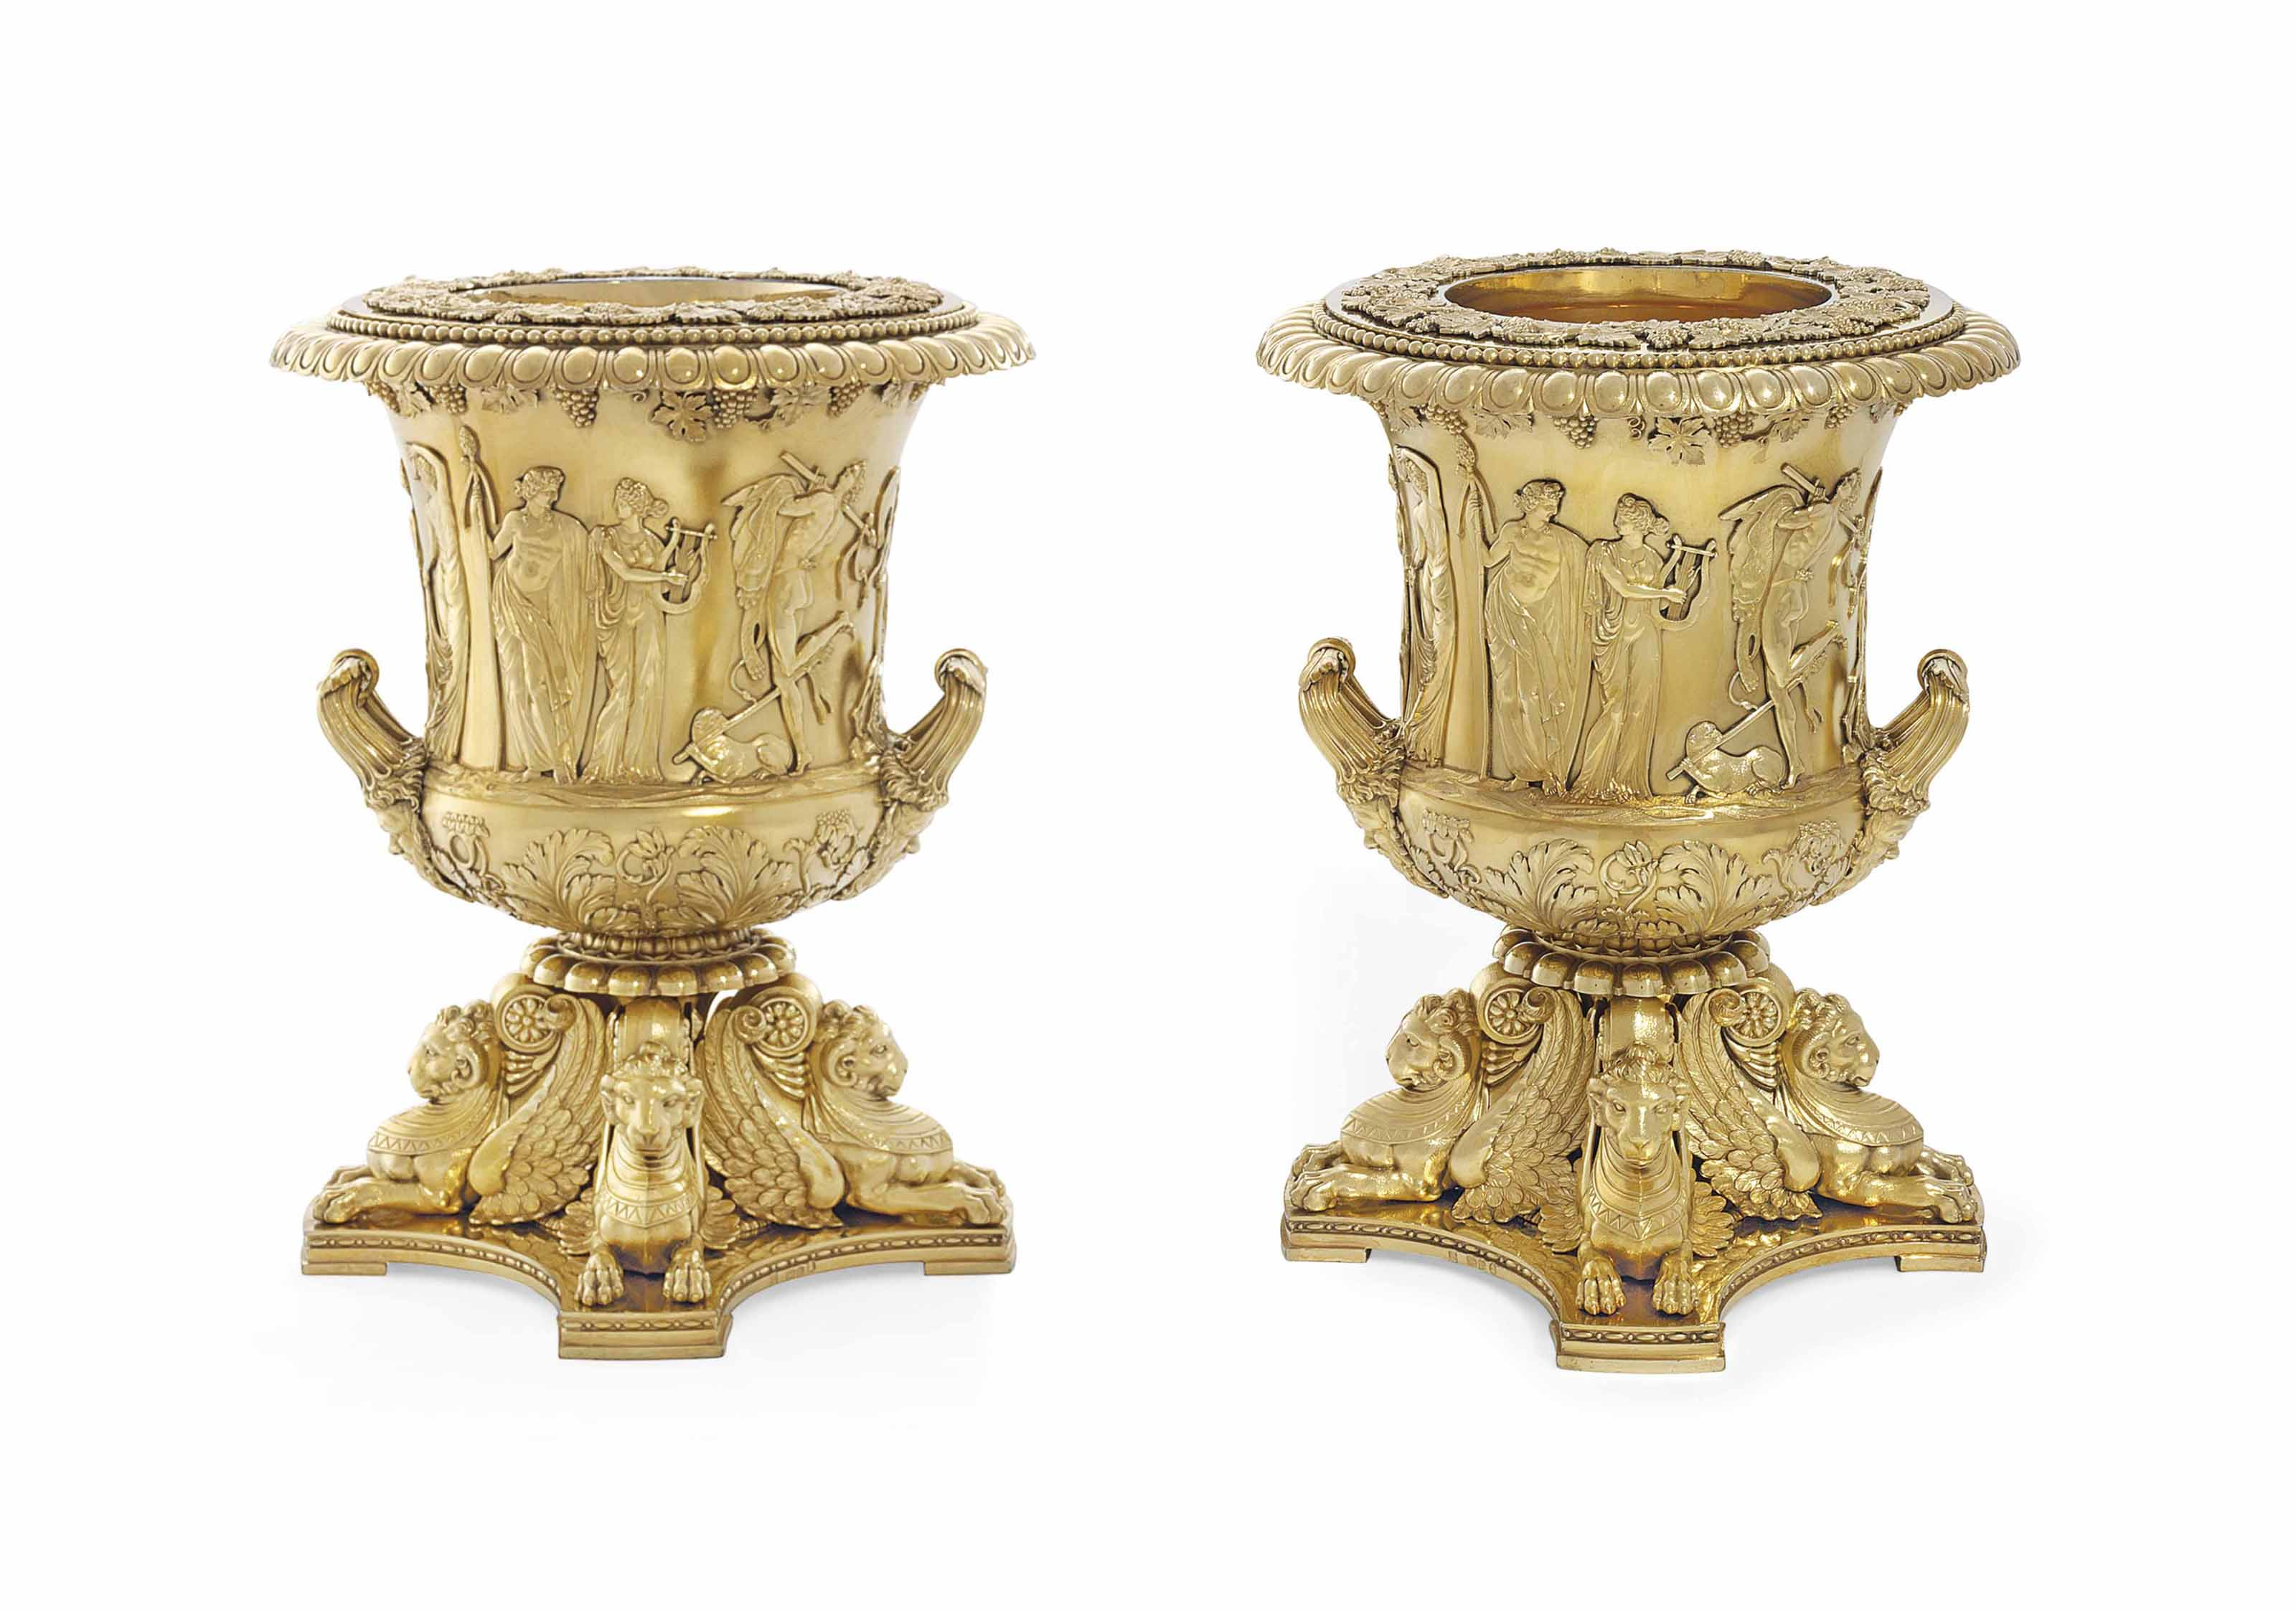 A PAIR OF GEORGE III SILVER-GILT WINE-COOLERS, COLLARS AND LINERS